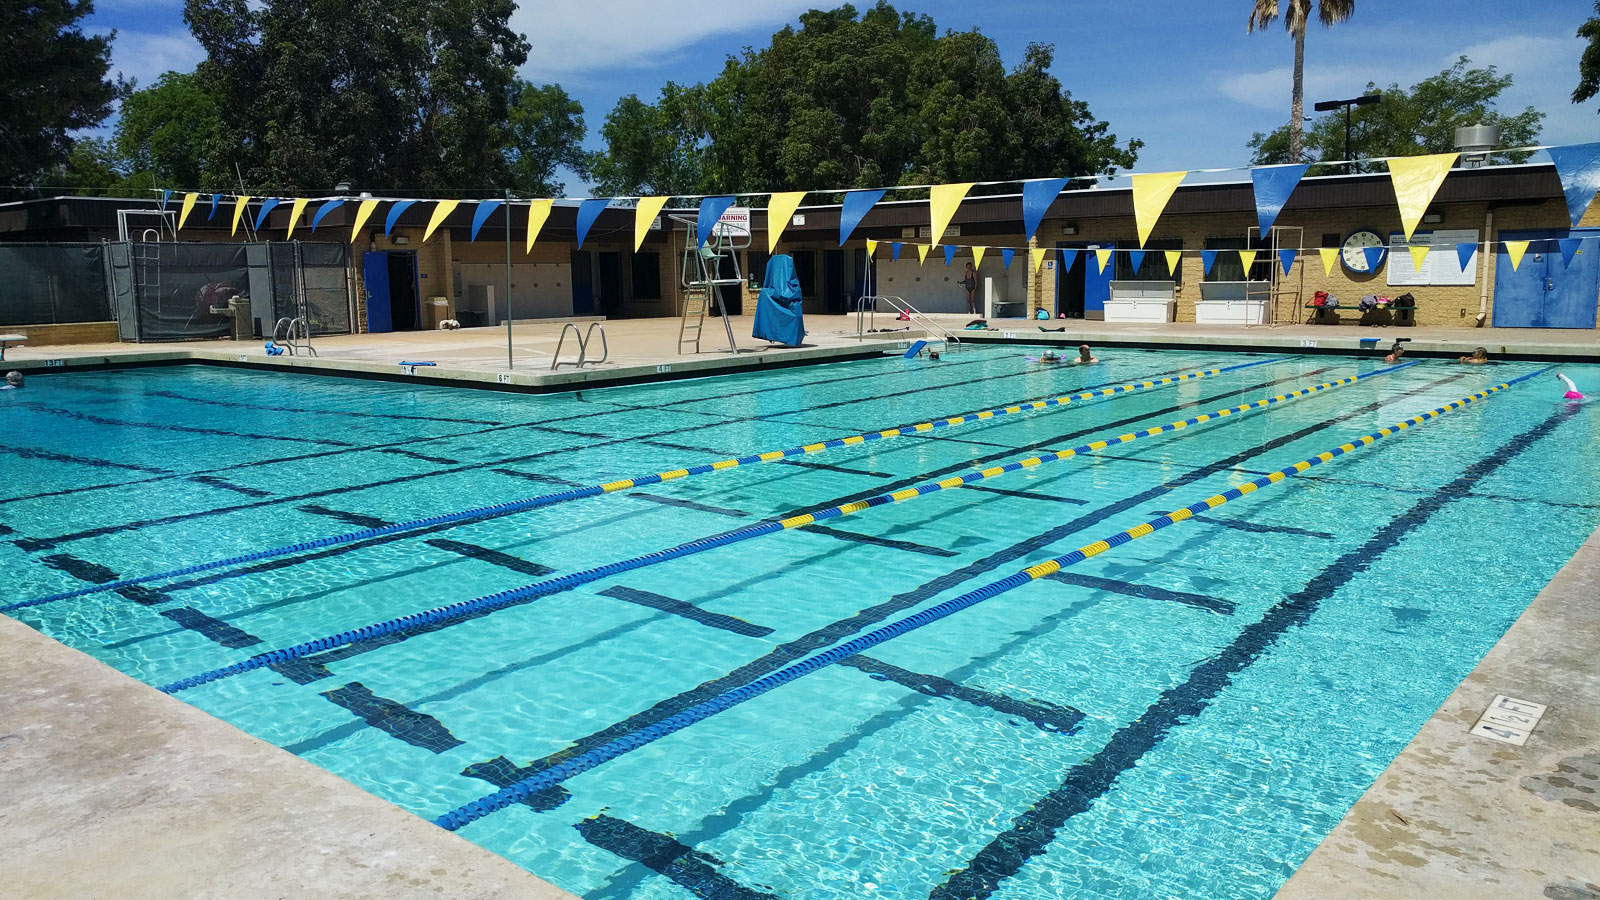 Swanson pool city of san diego official website for Garden city swimming pool hours